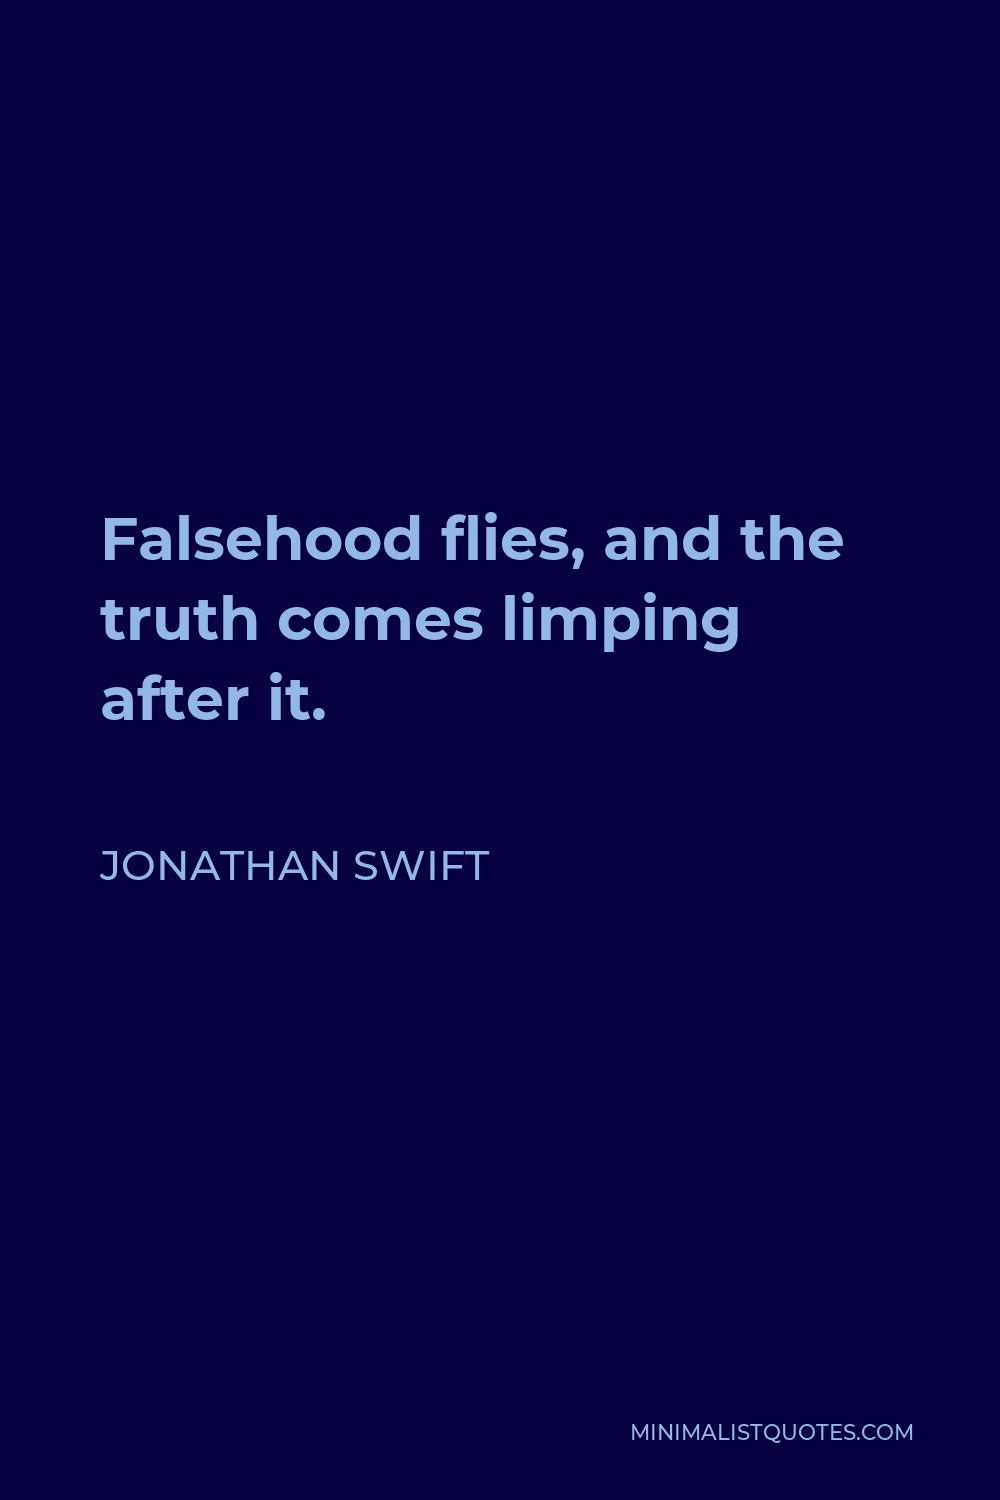 Jonathan Swift Quote - Falsehood flies, and the truth comes limping after it.